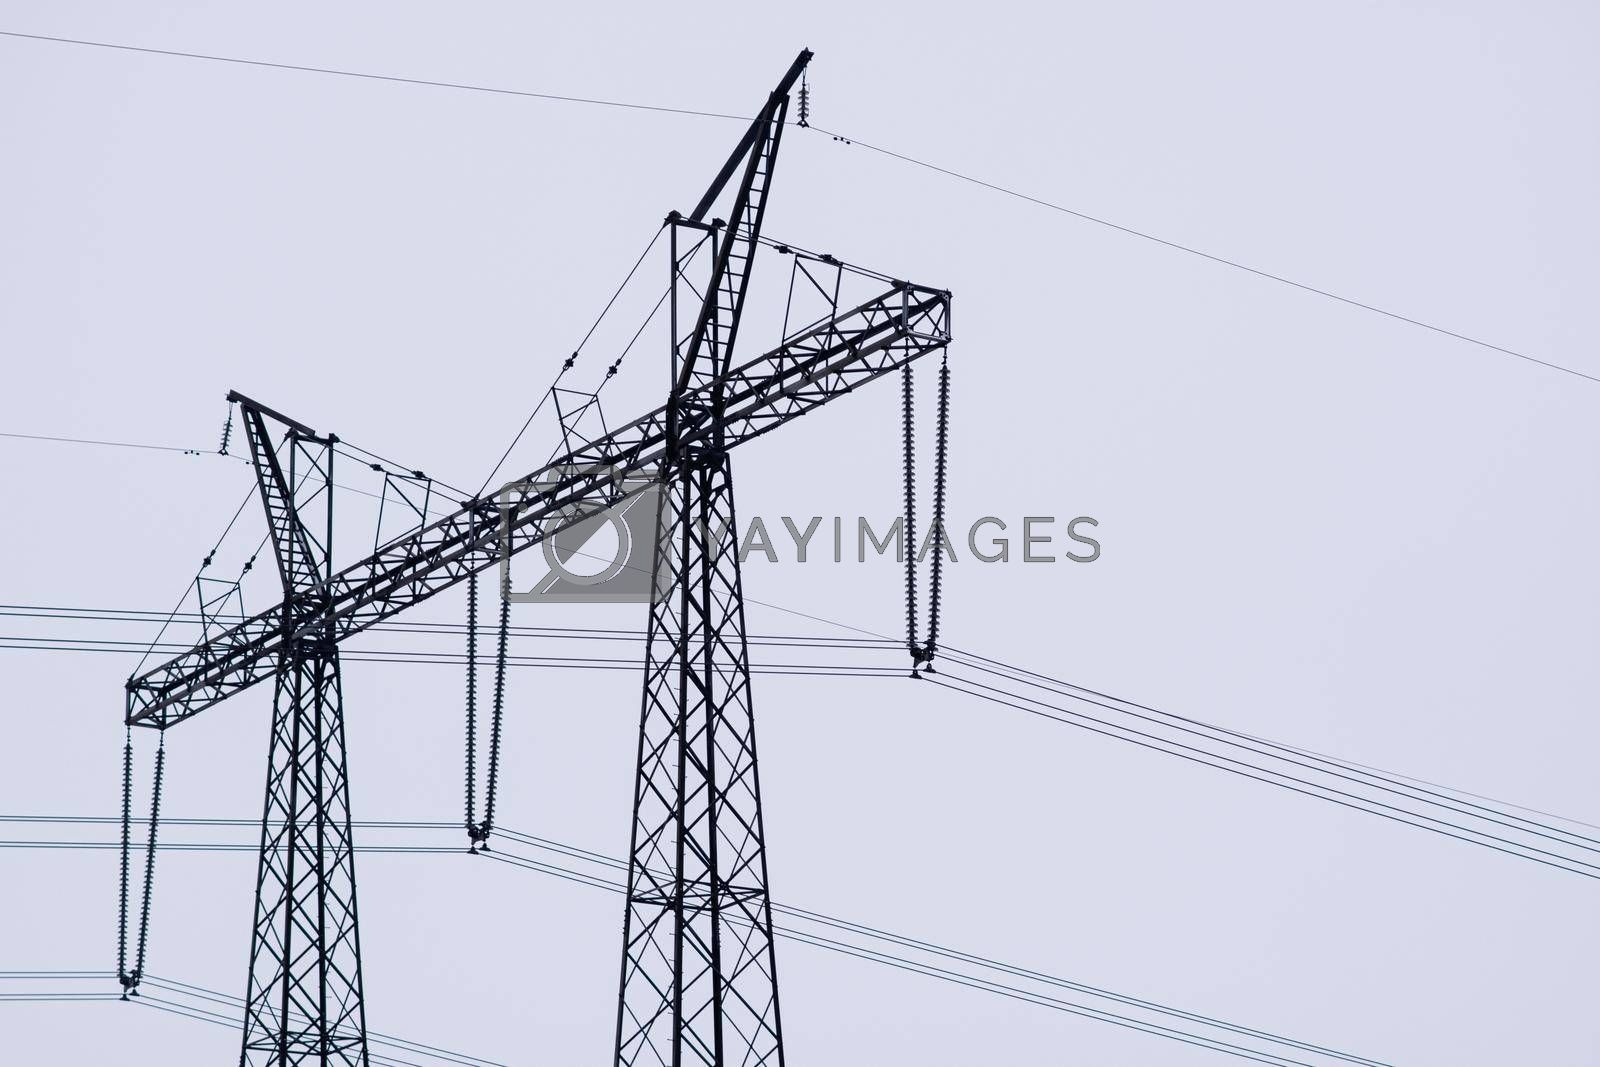 High-voltage power transmission towers. High quality photo